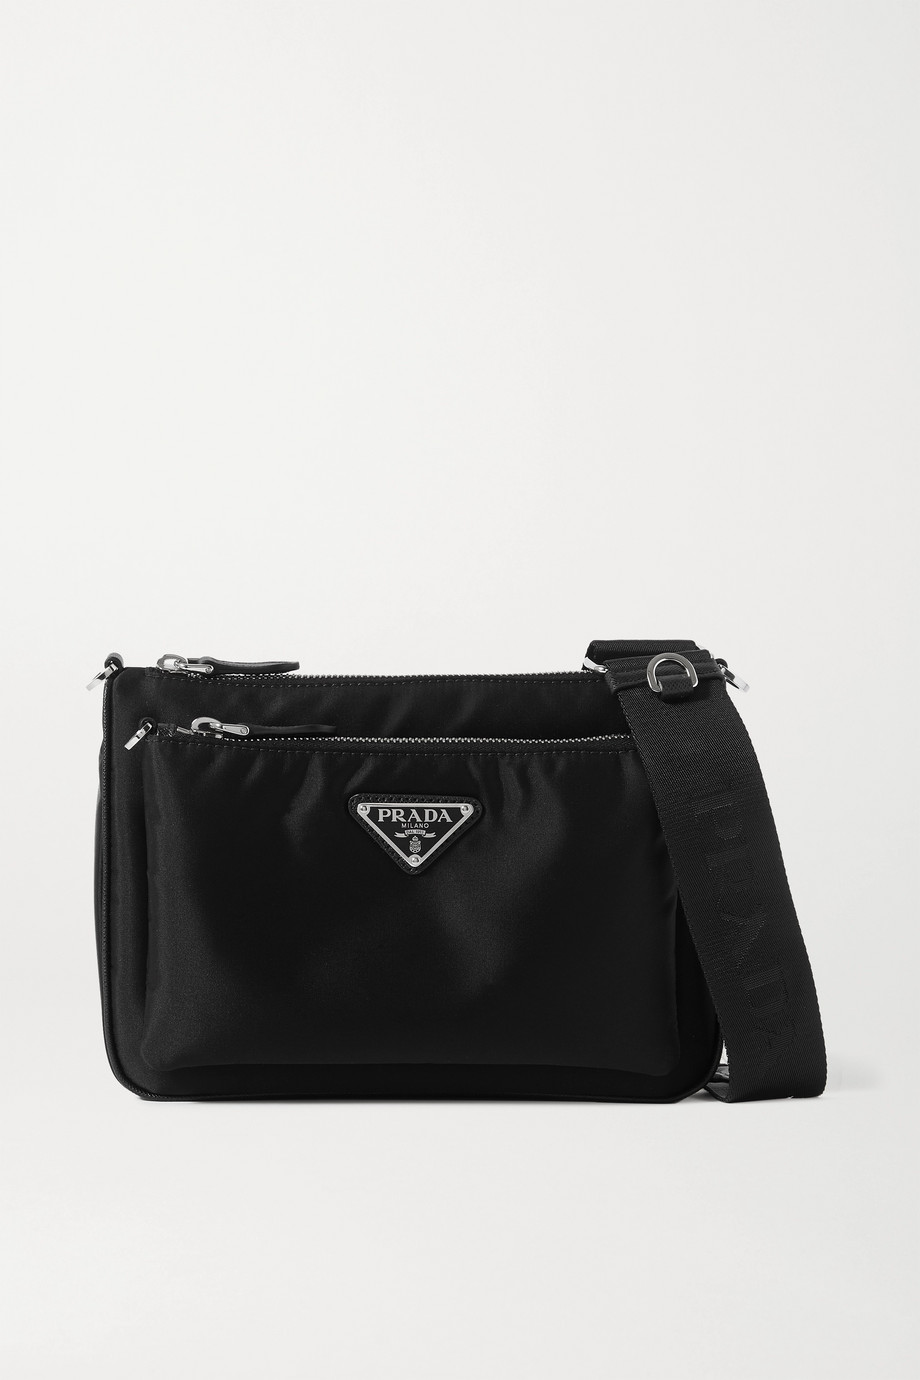 Prada Tessuto textured leather-trimmed nylon shoulder bag